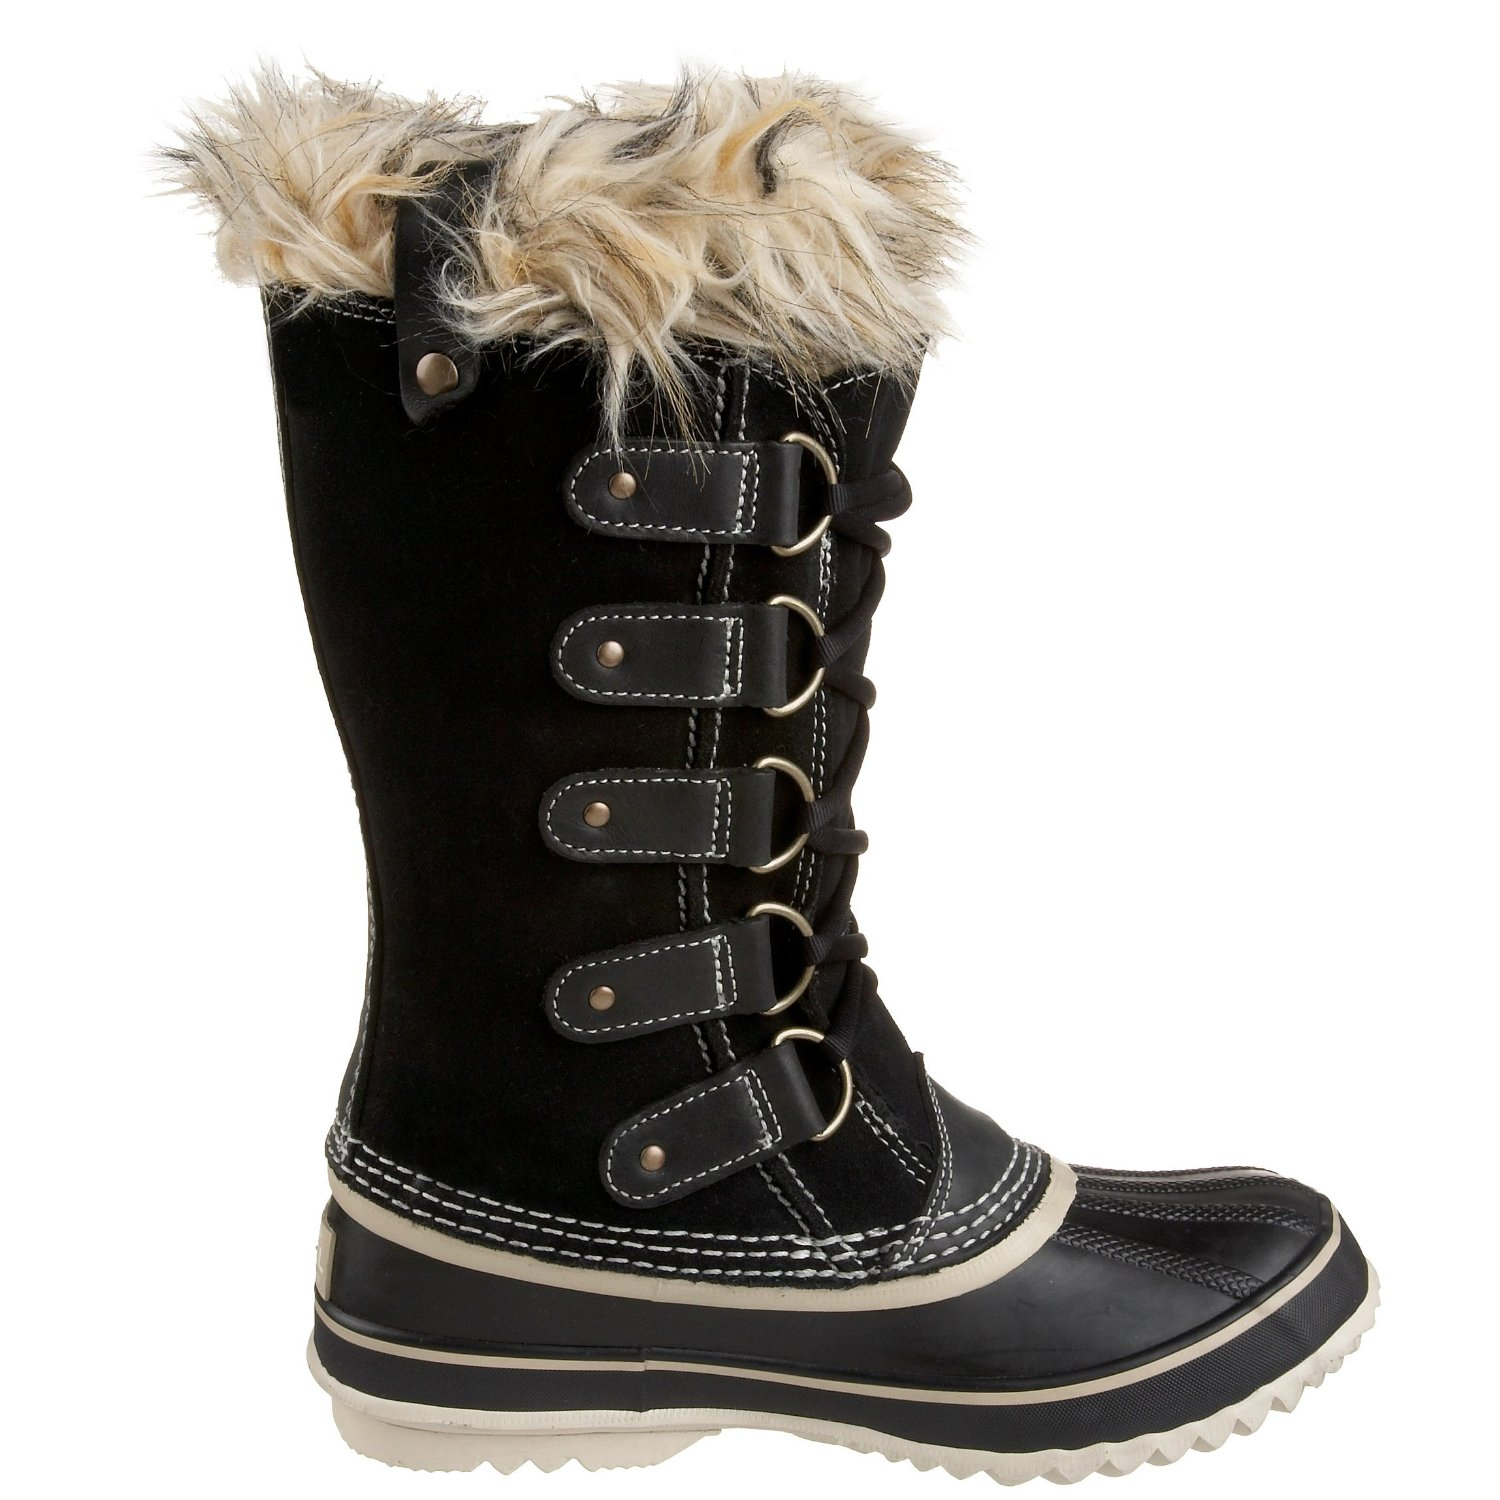 Top 100 Winter Boots | Homewood Mountain Ski Resort